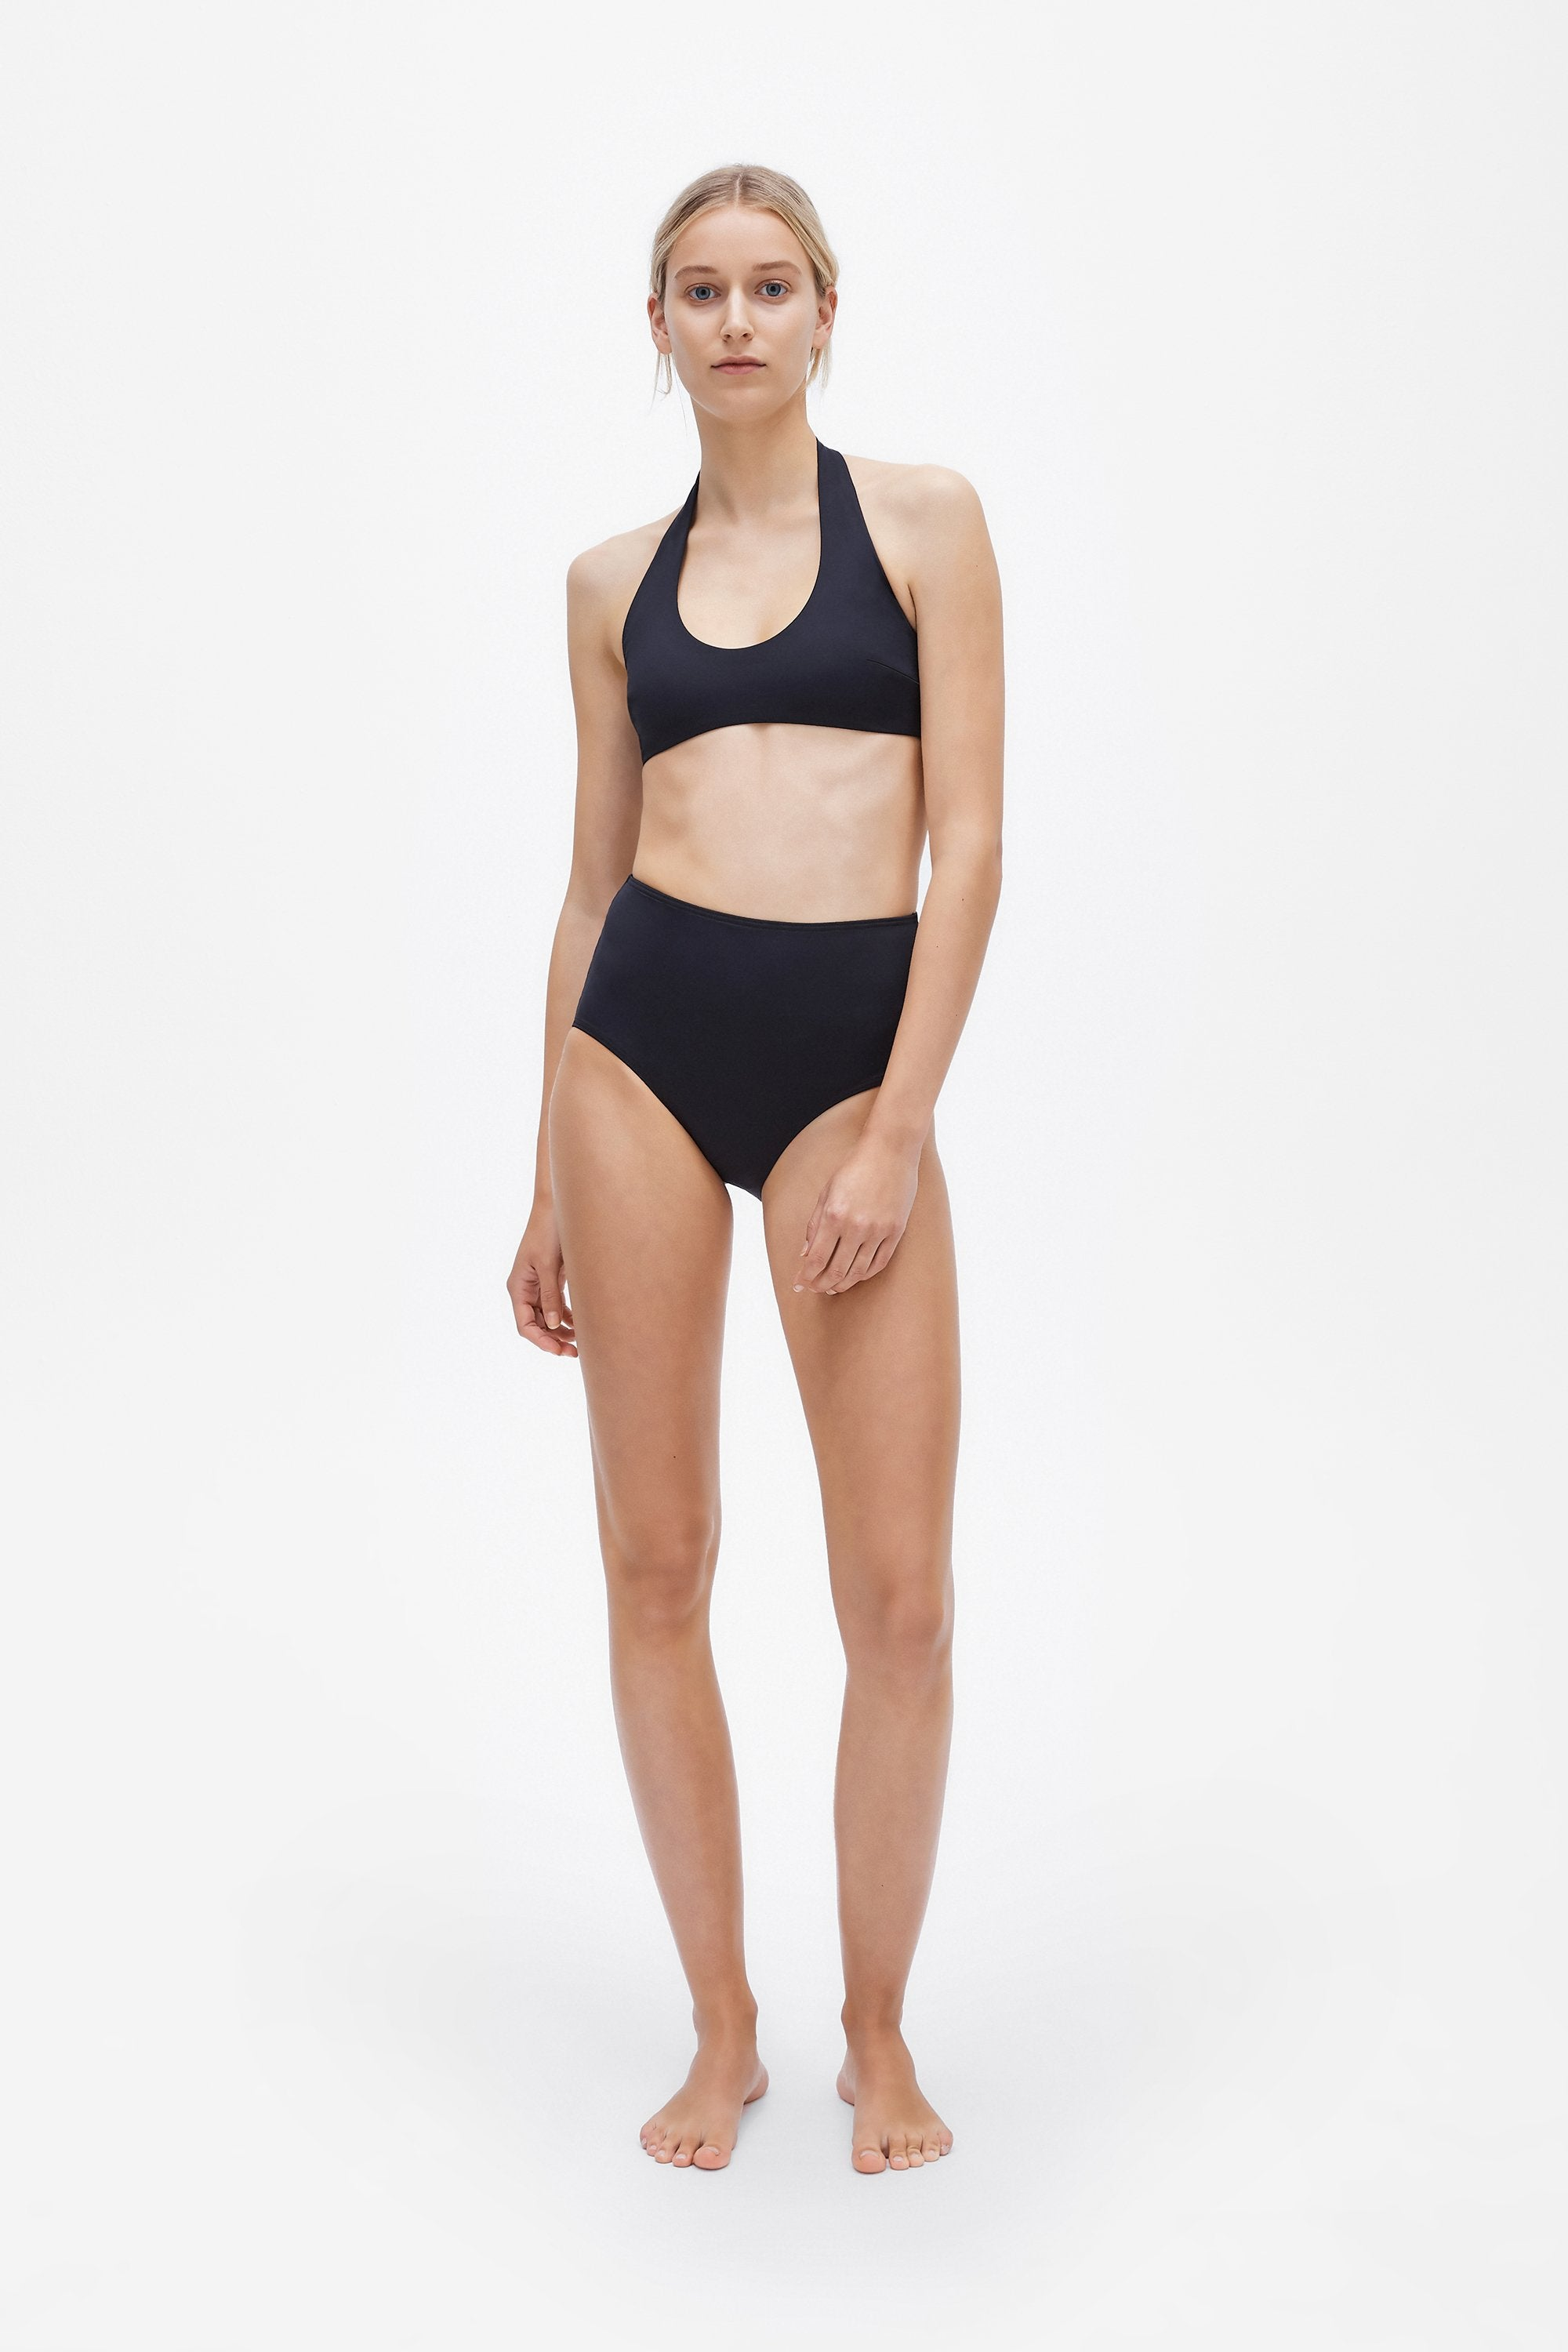 Ren two-piece set - Coal black - Swim two piece - Her Line